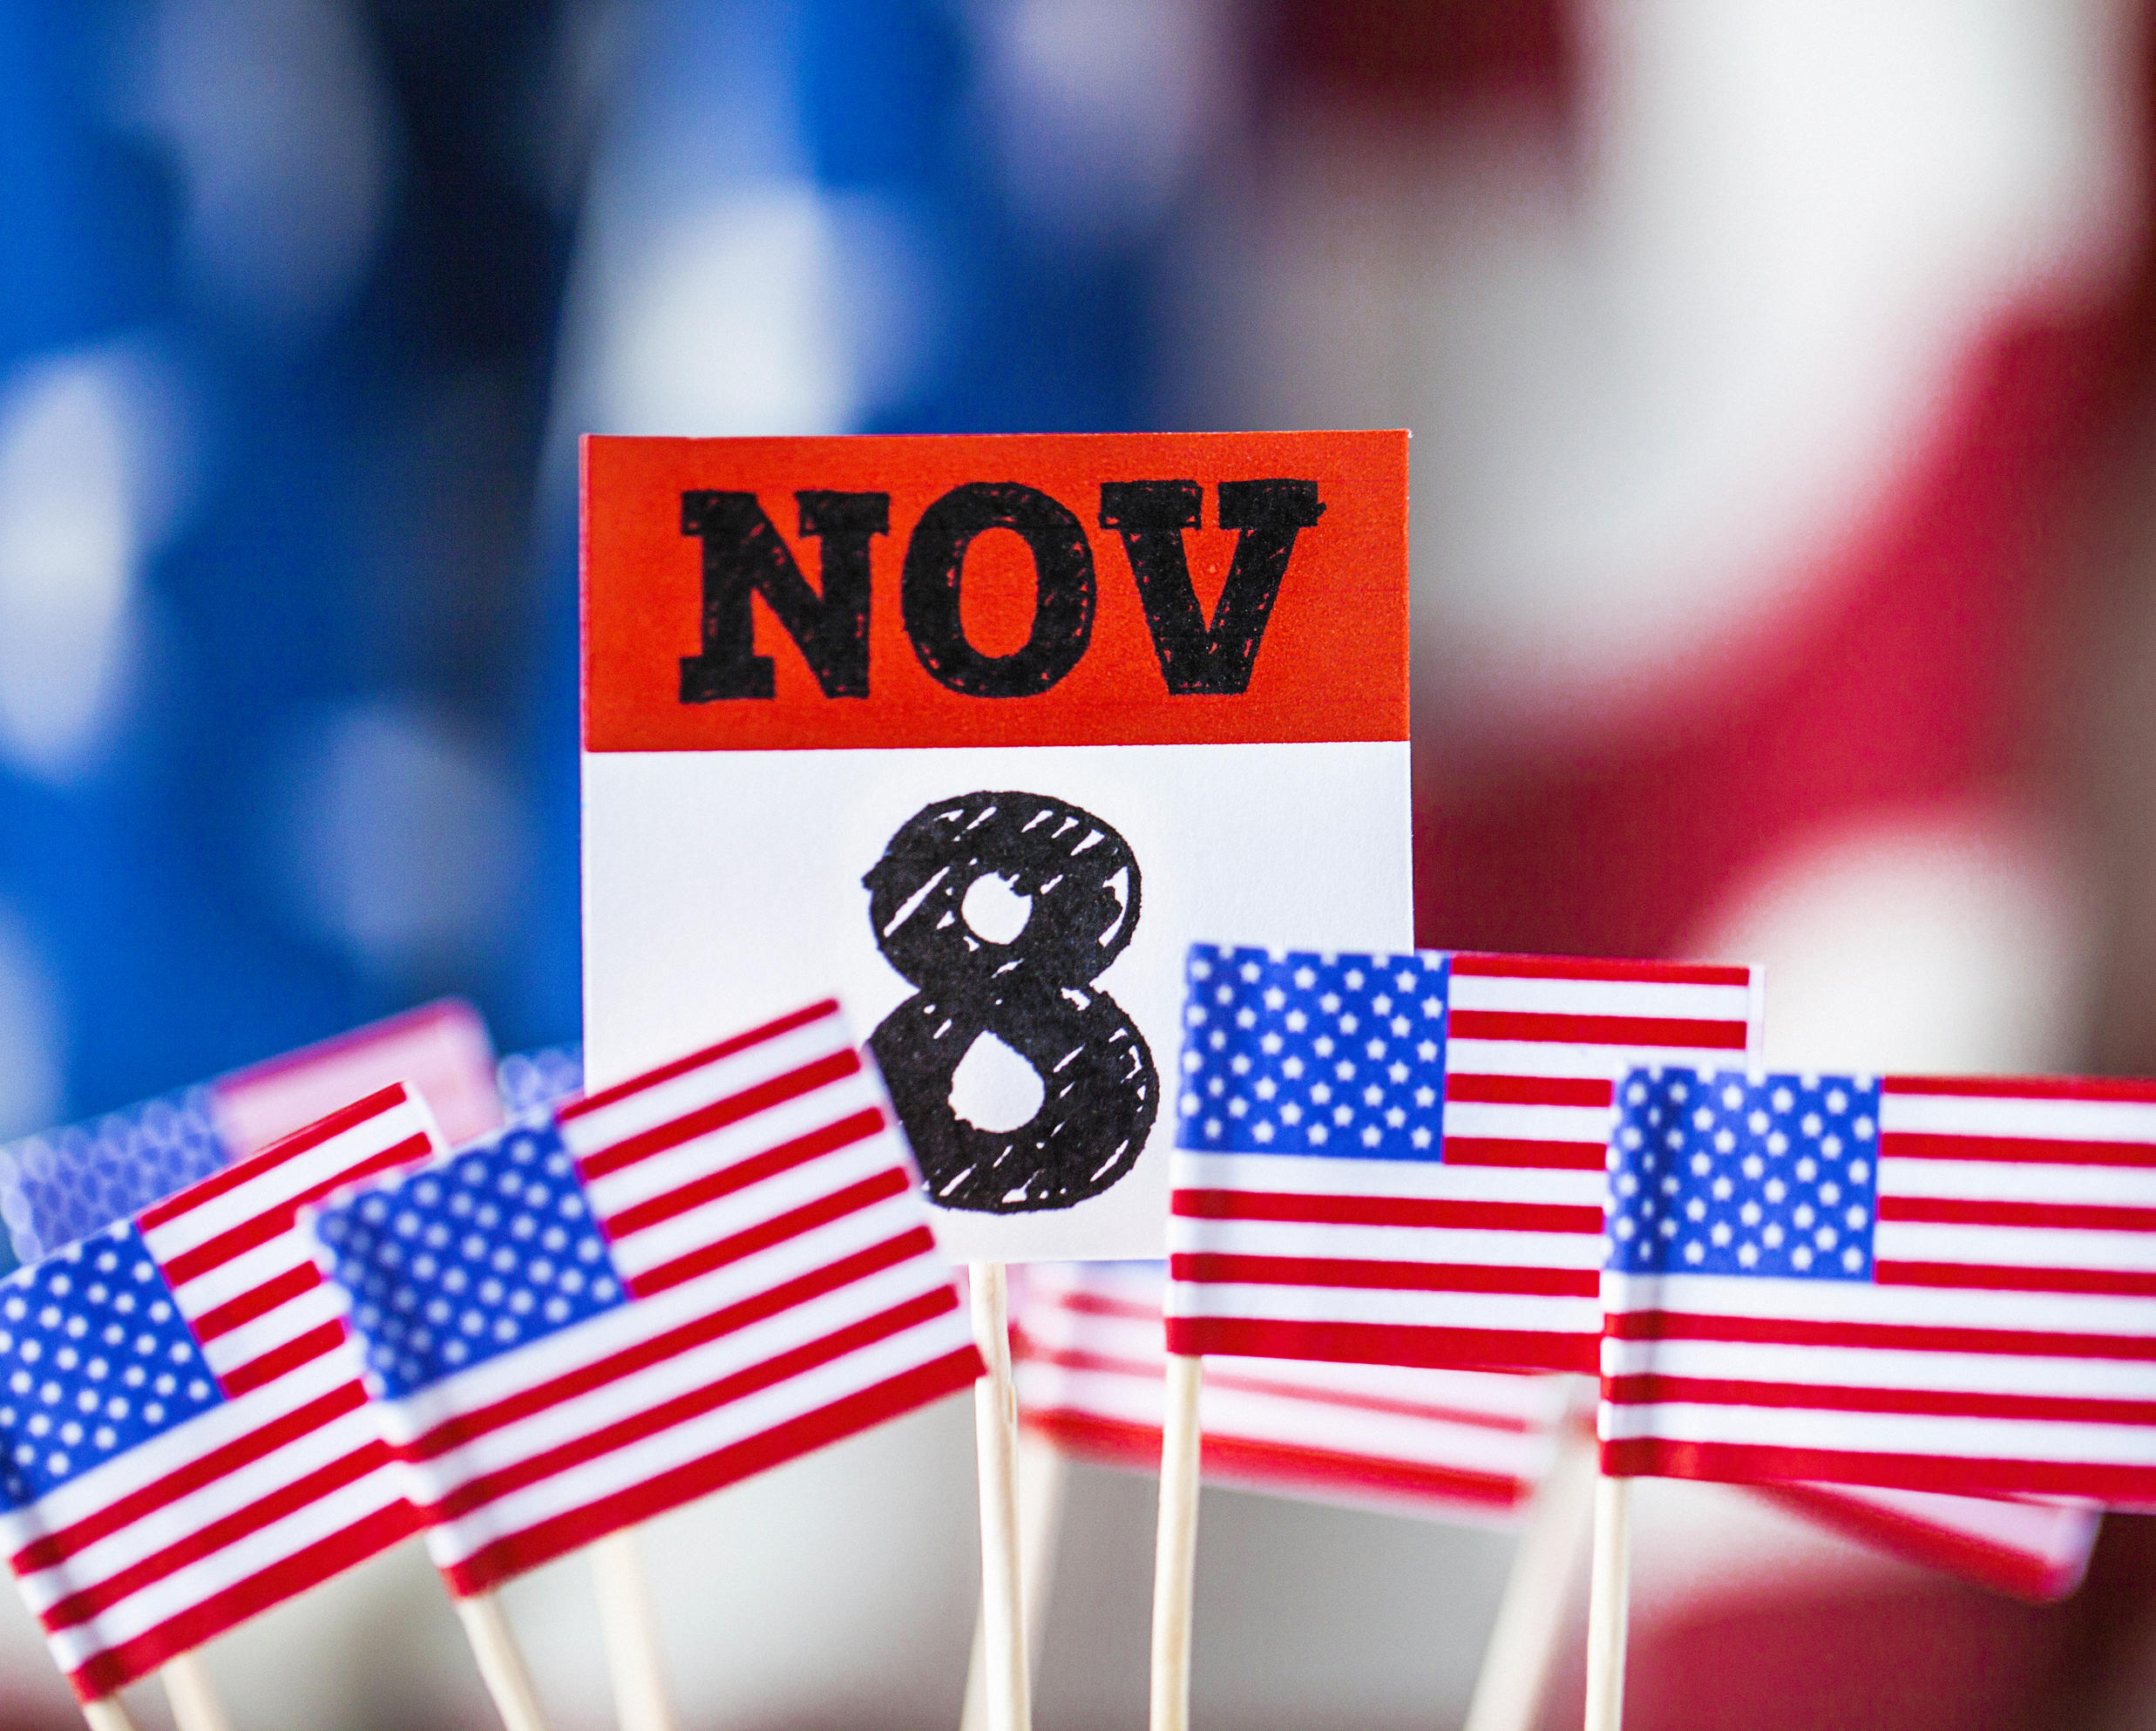 American flags and November 8th calendar date - election day